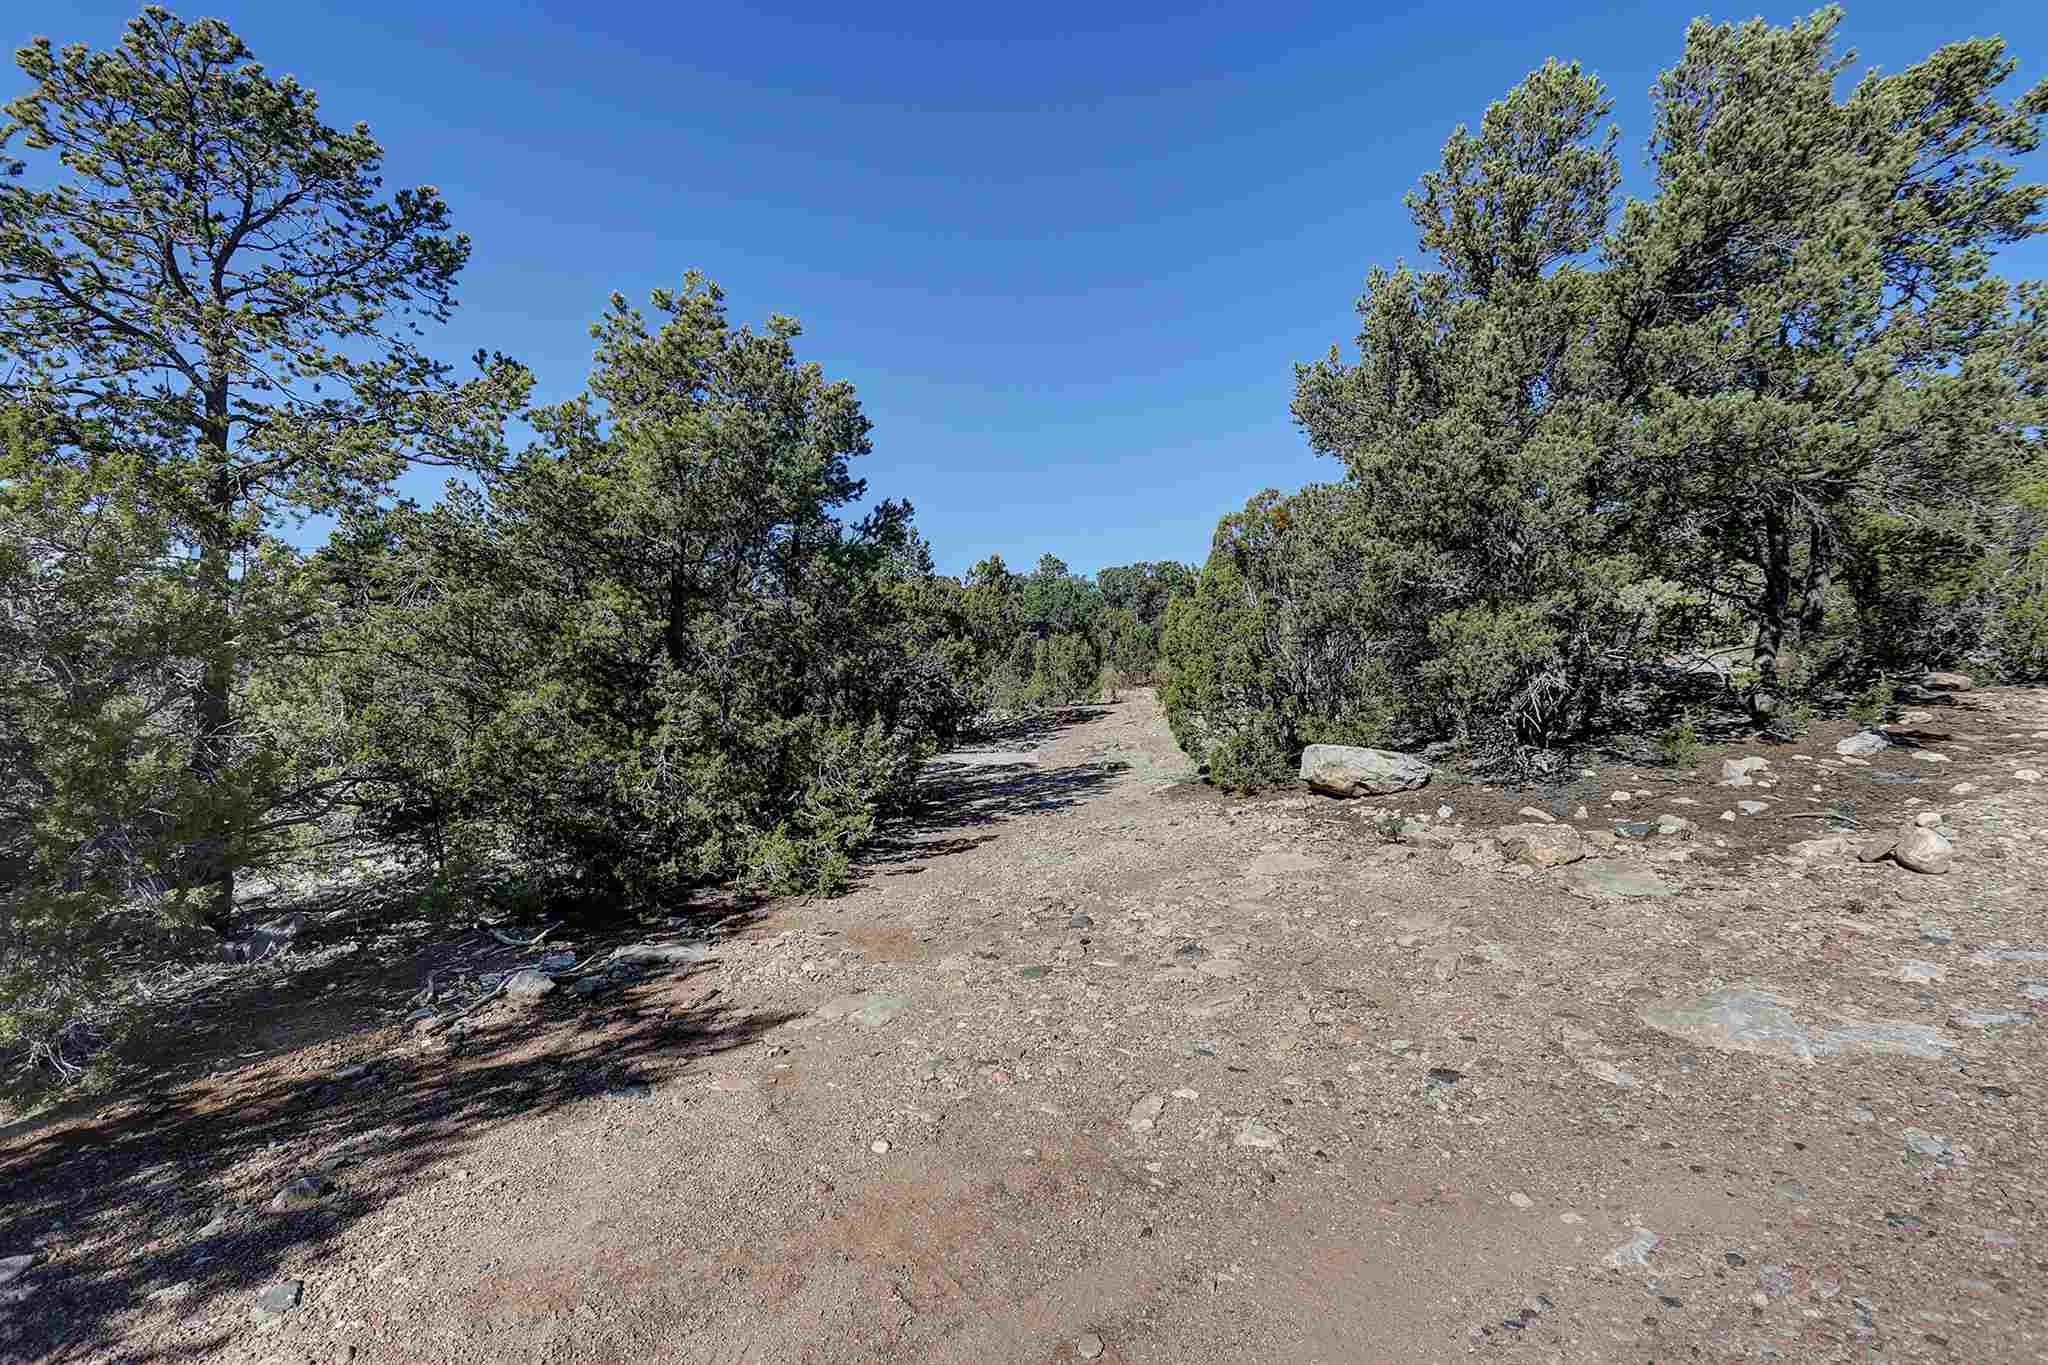 73 Velasquez Road Glorieta, NM 87535